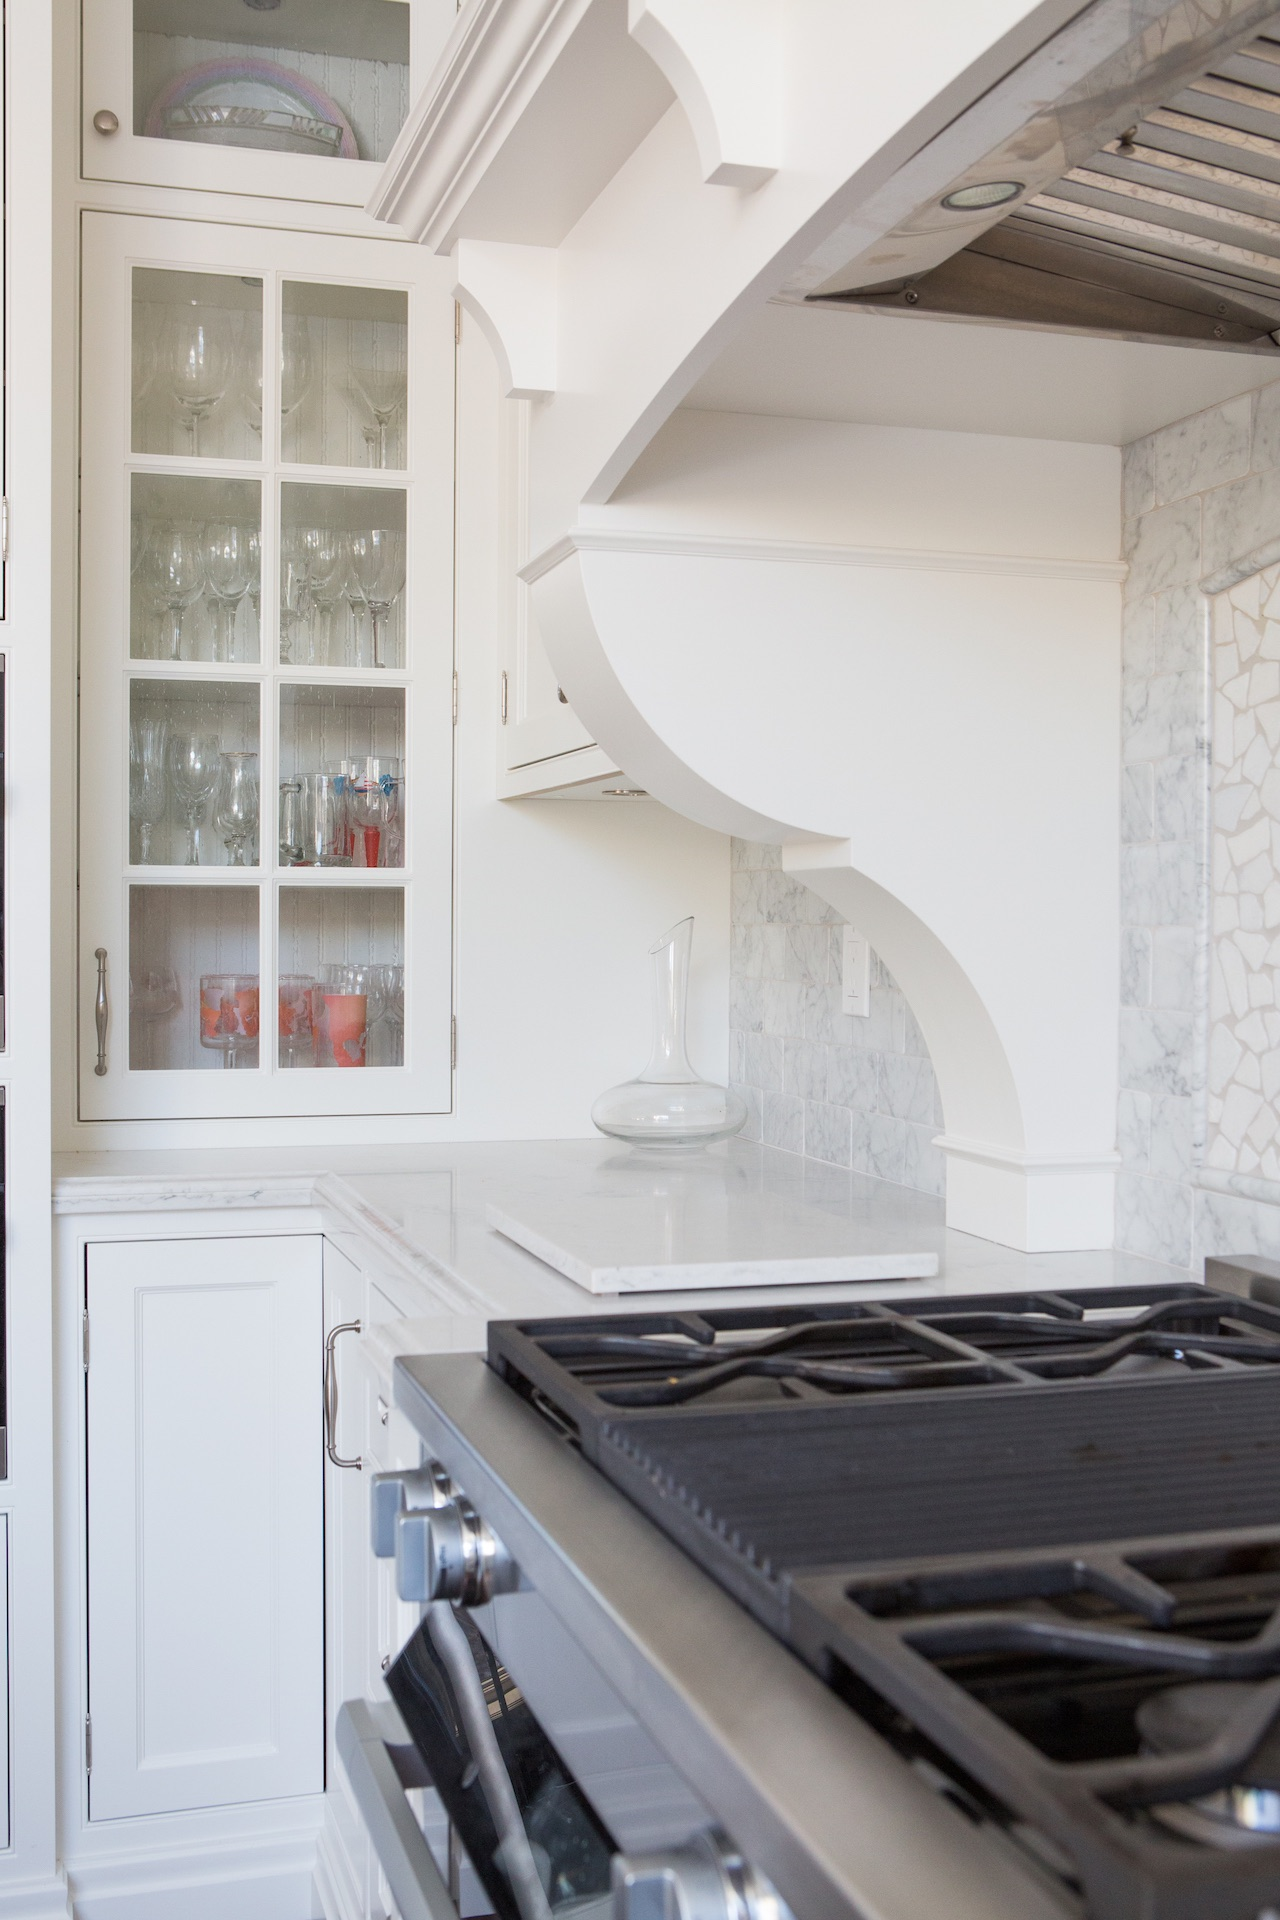 stove top and white cabinets